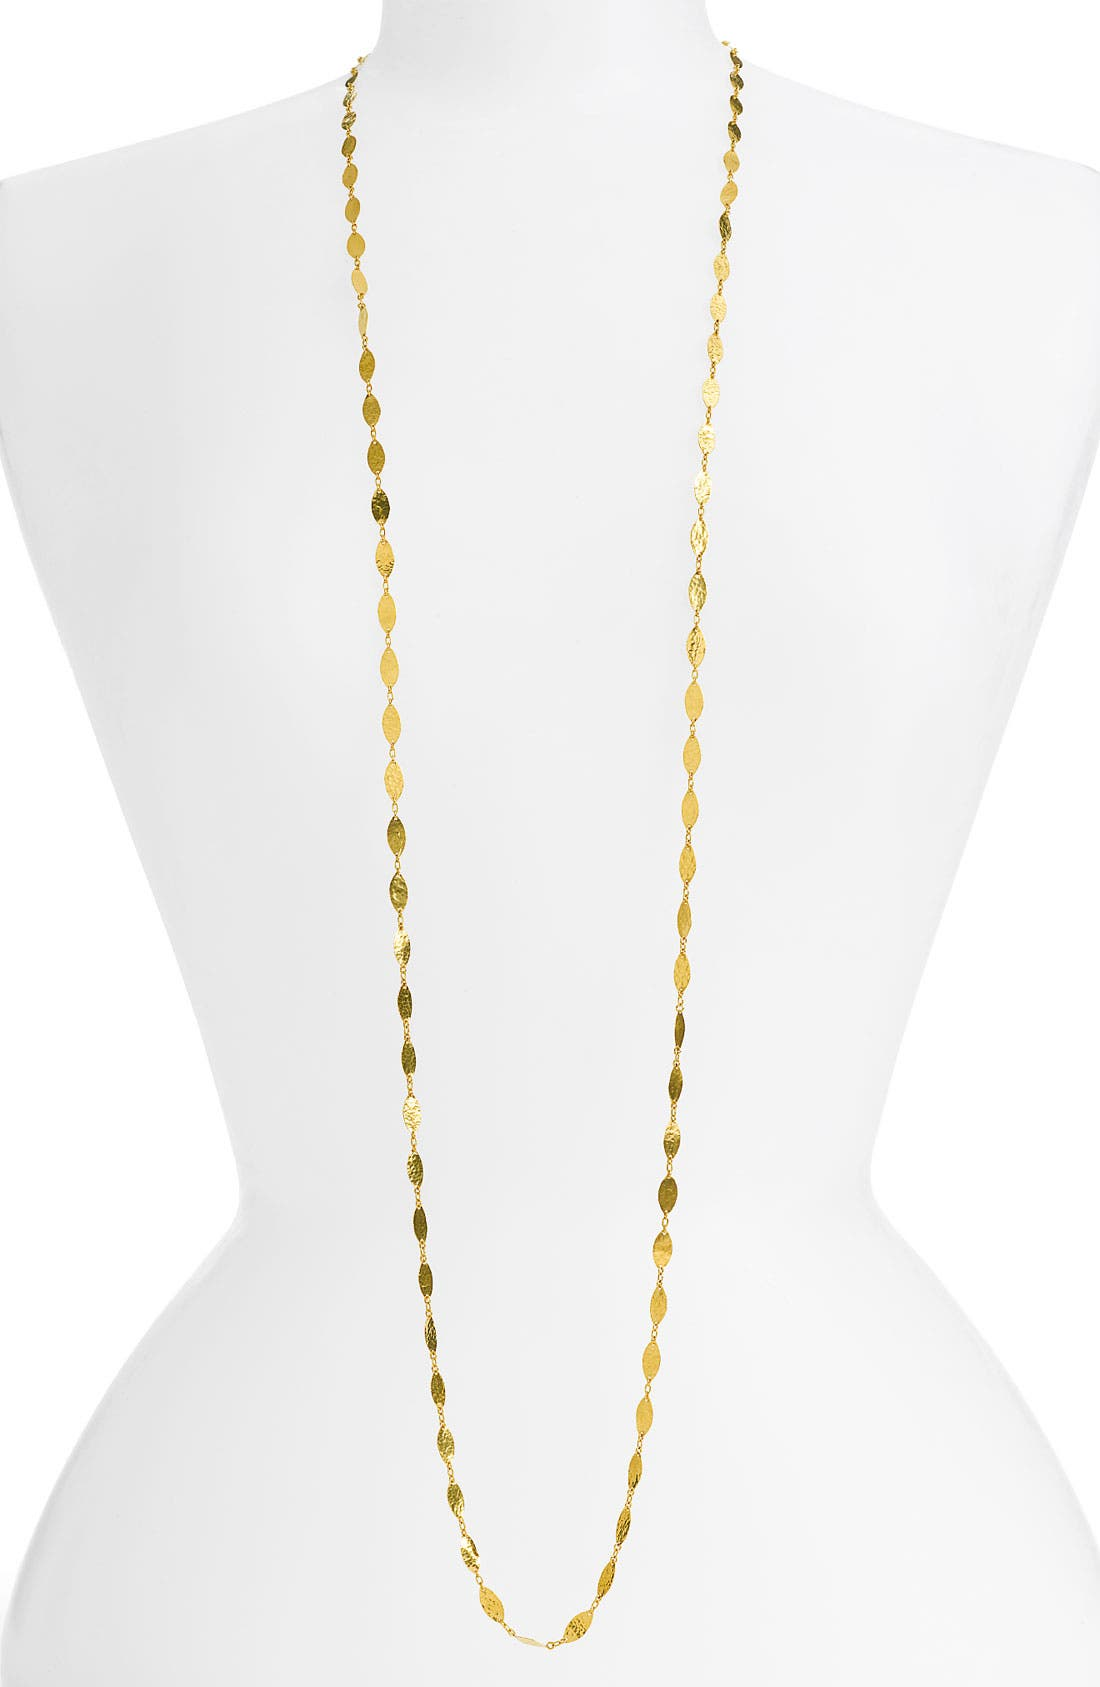 Alternate Image 1 Selected - Gurhan 'Willow' Extra Long Leaf Necklace